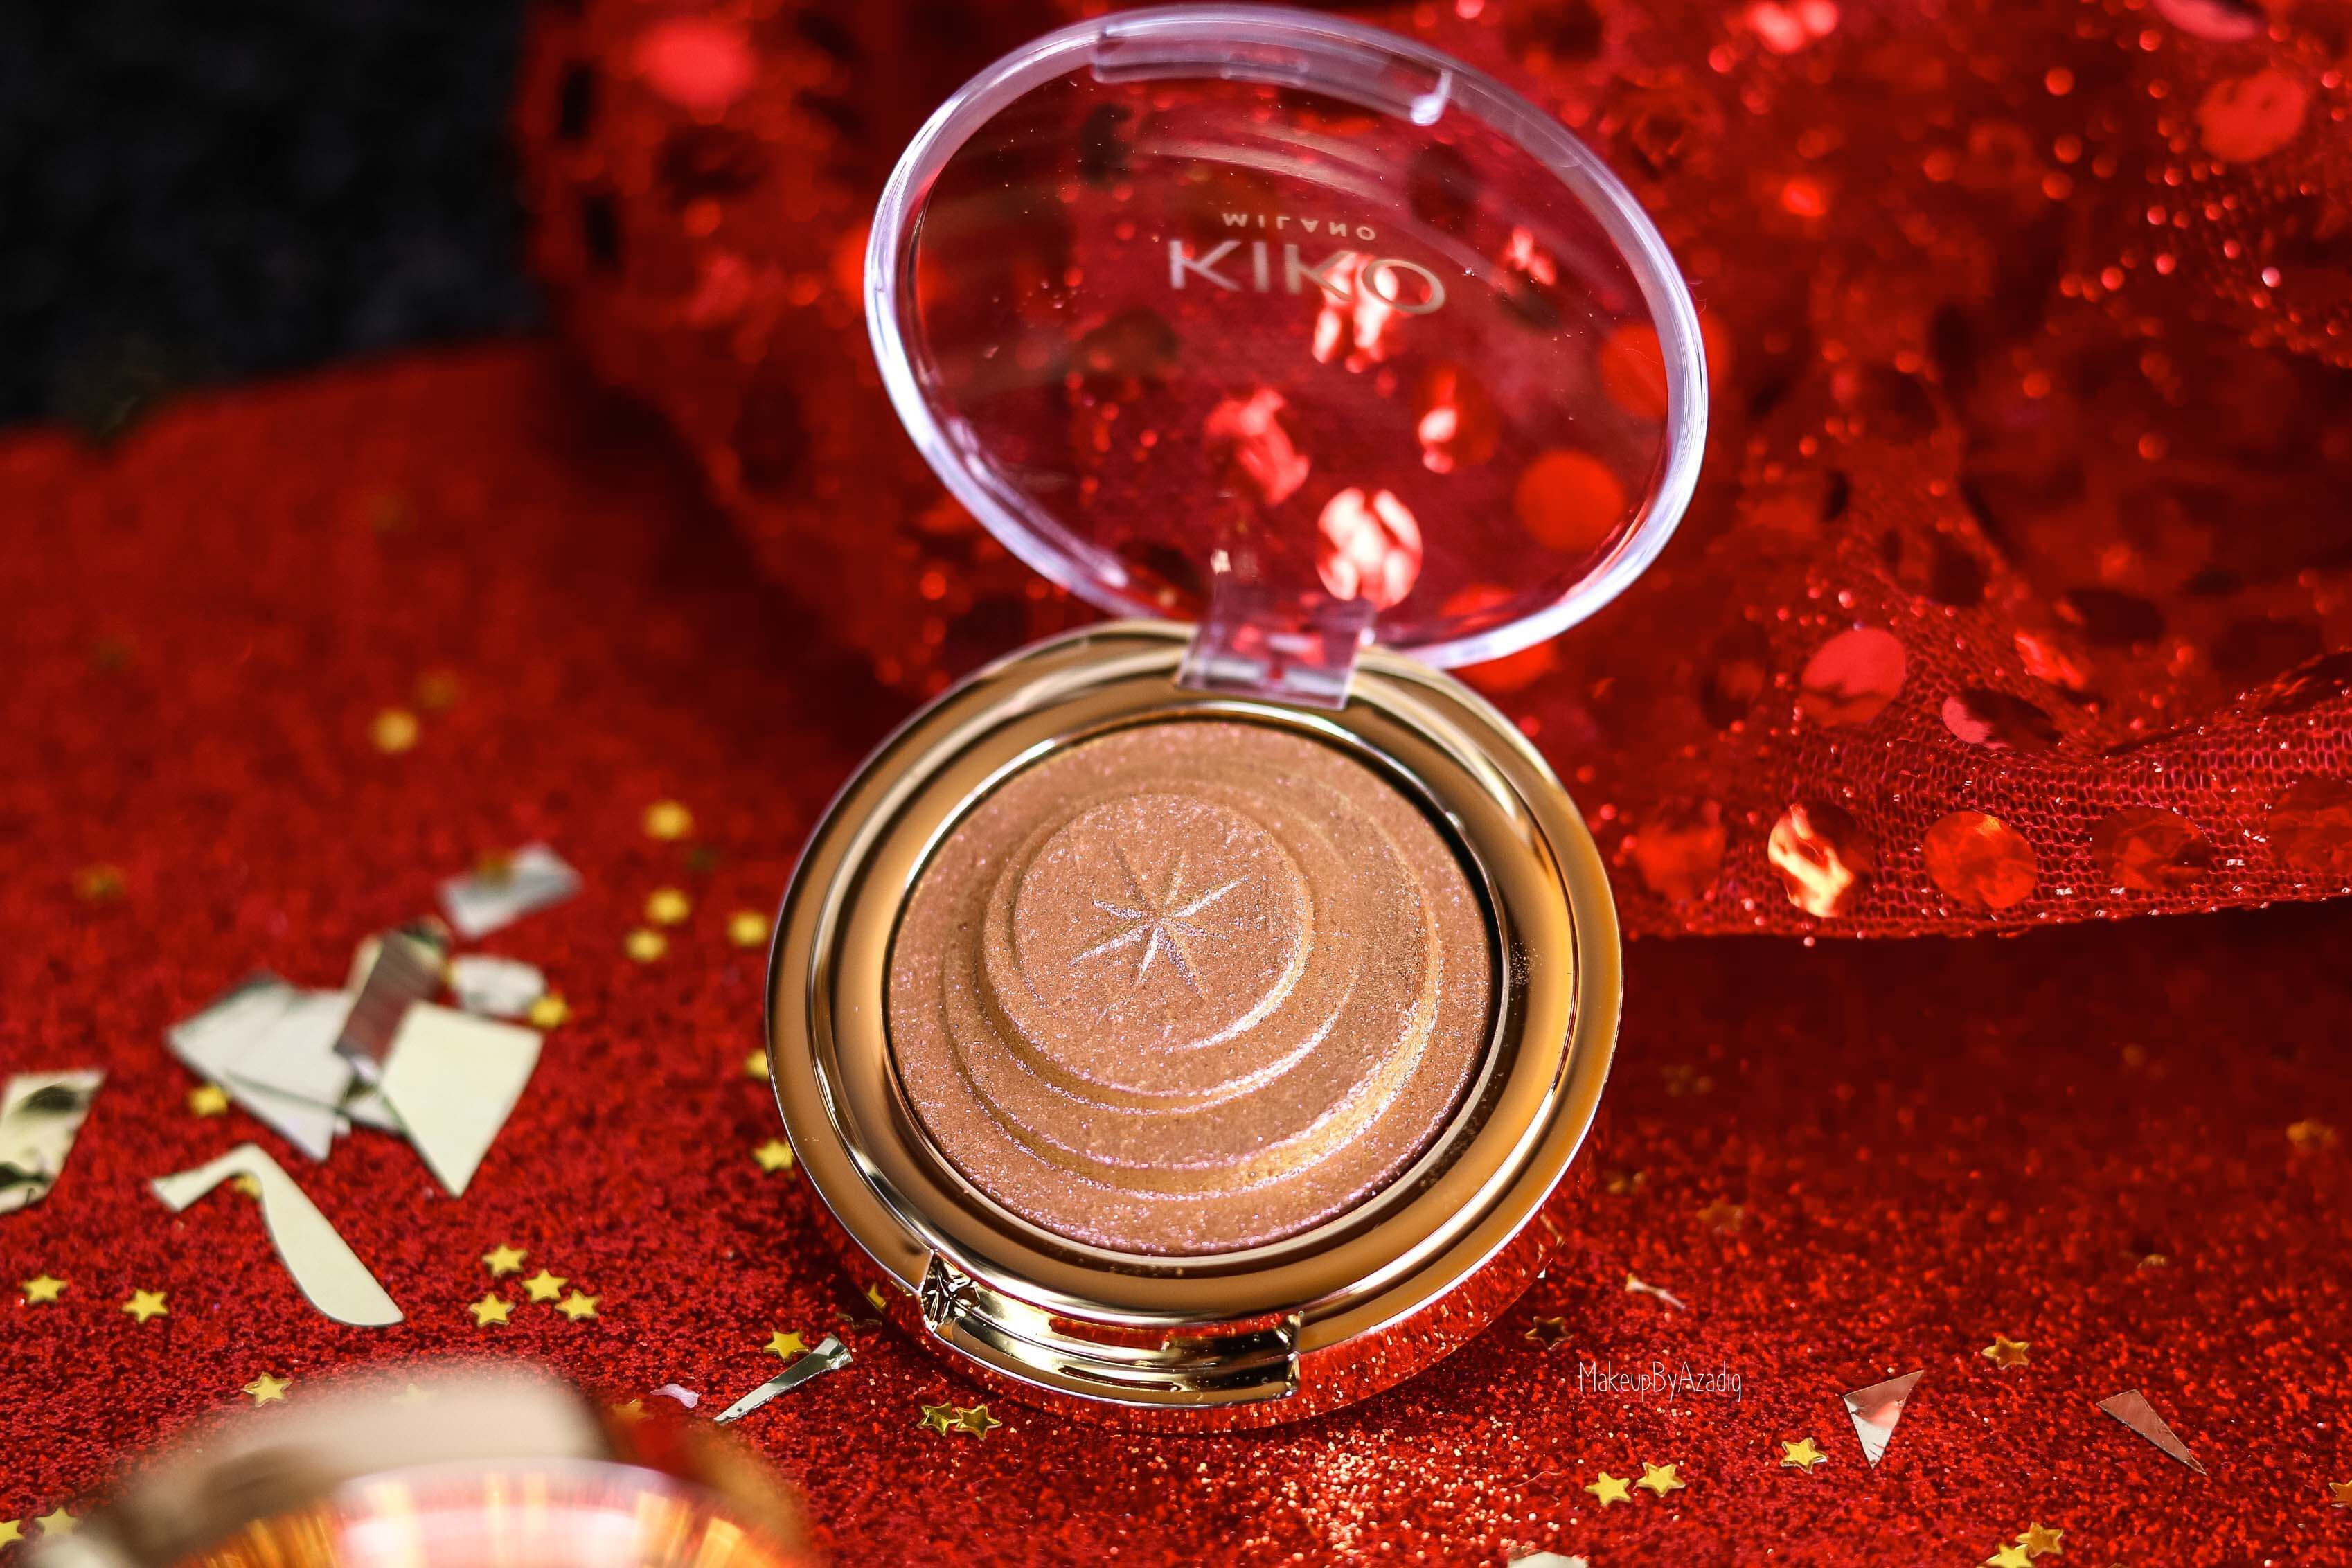 revue-collection-noel-kiko-milano-troyes-magical-holiday-rouge-levres-fard-paupieres-makeupbyazadig-avis-prix-swatch-paillete-2019-gold